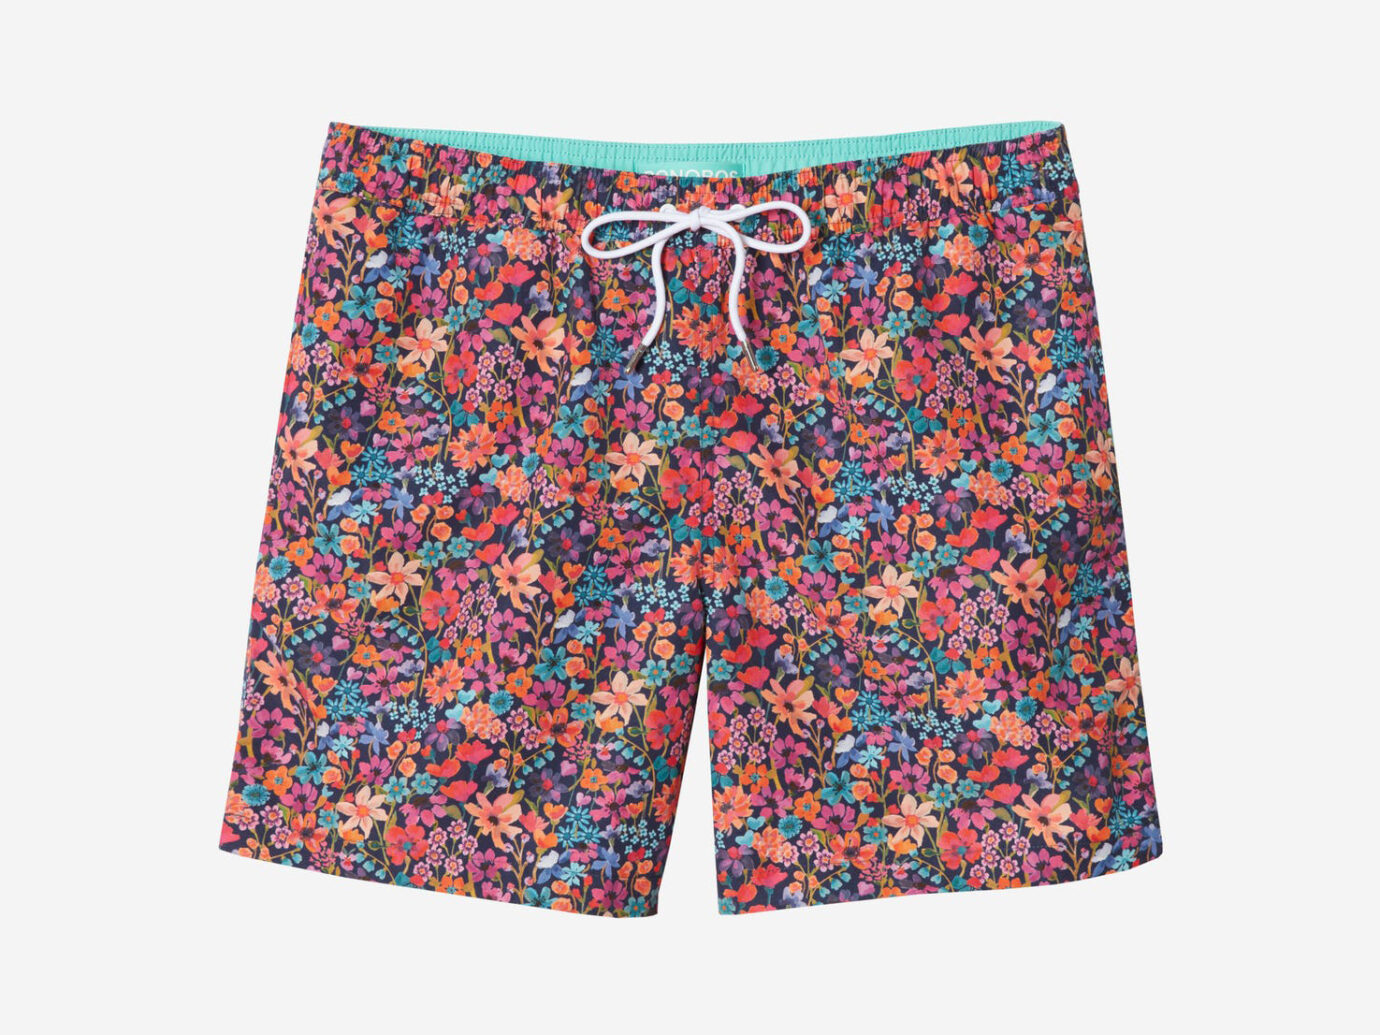 Bonobos Swimtrunks